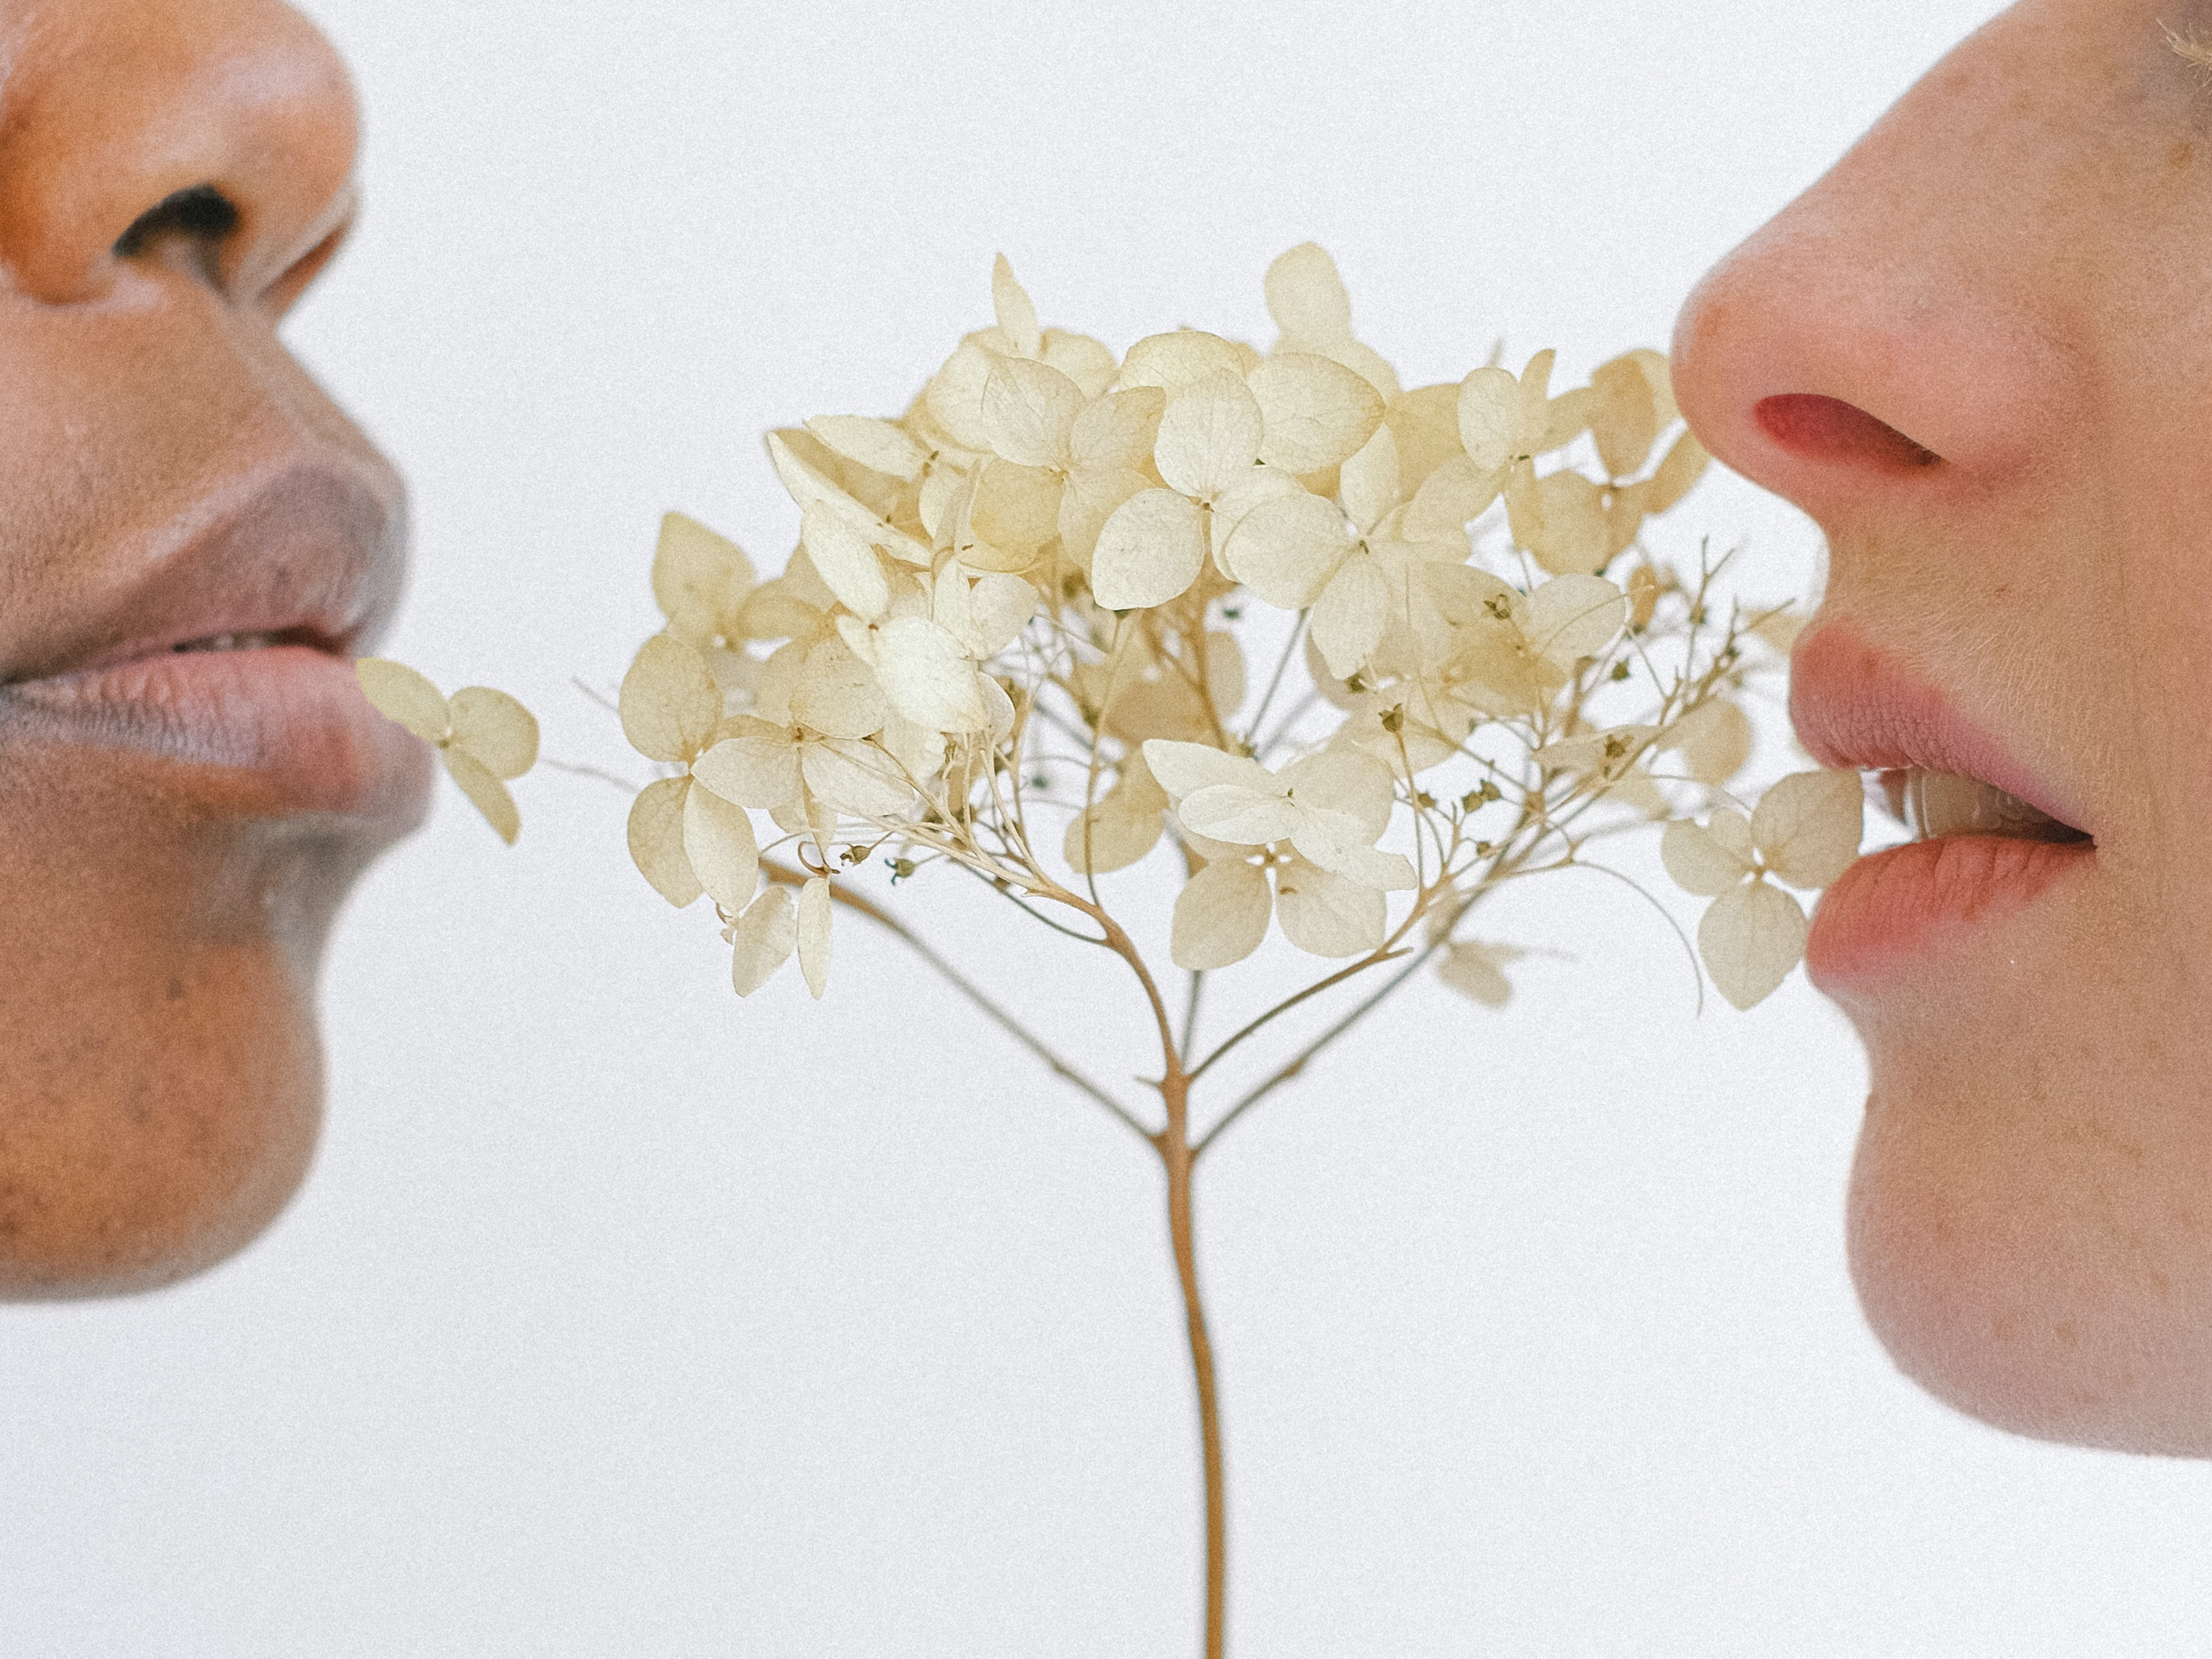 people-holding-white-flowers-close-to-their-lips-4557466